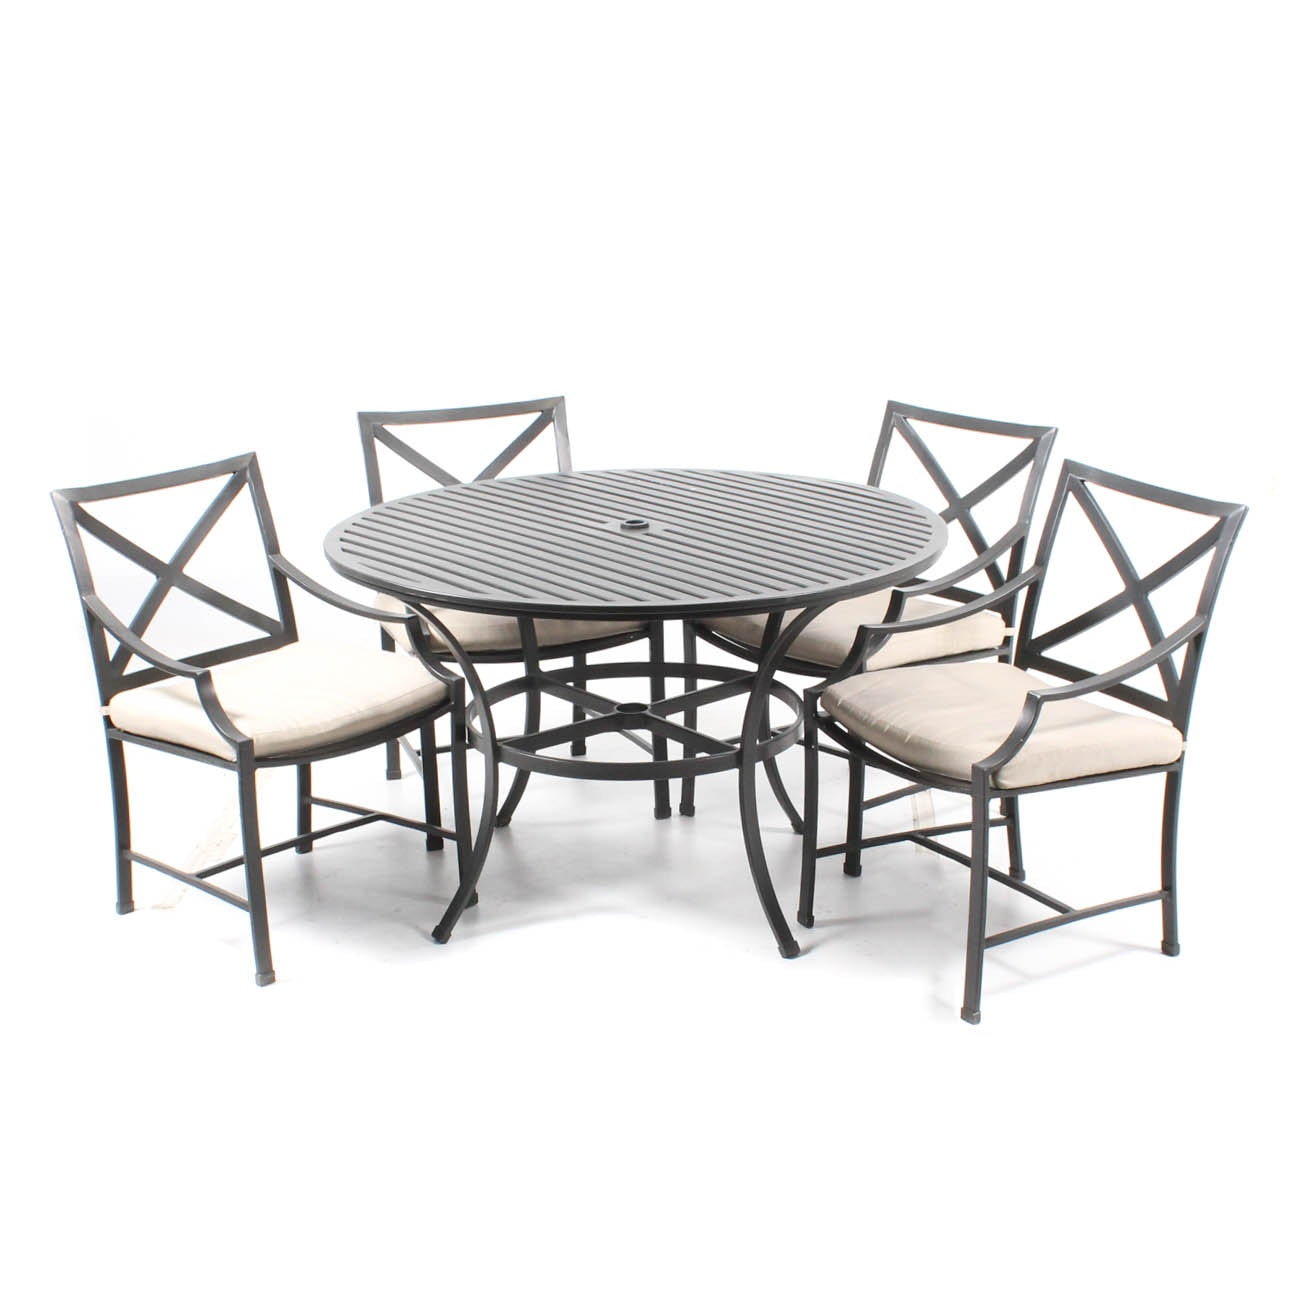 Restoration Hardware Patio Table and Chairs